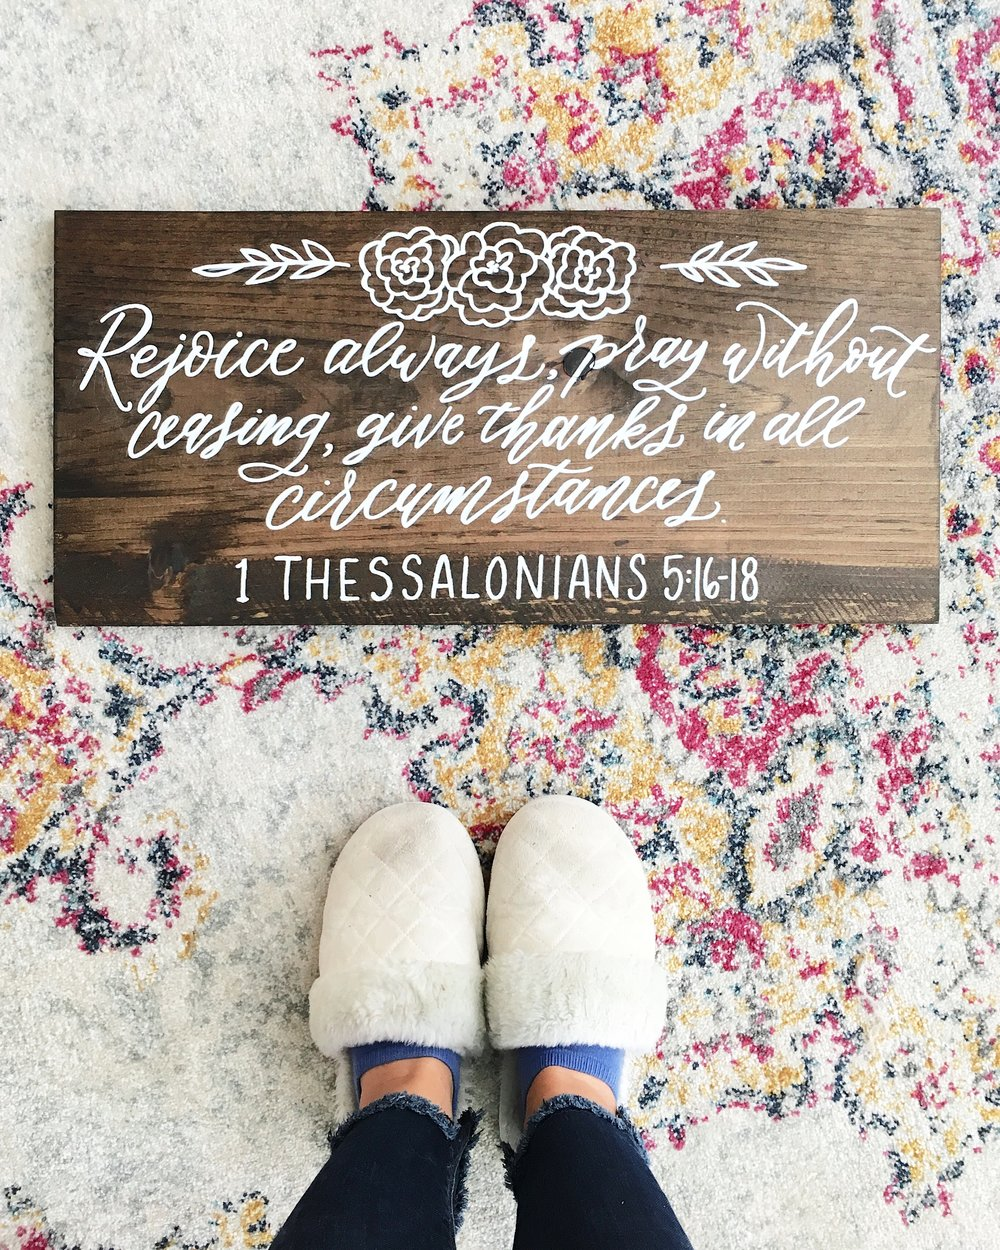 bible verse wood sign, custom wood sign, custom wedding sign, wood wedding sign